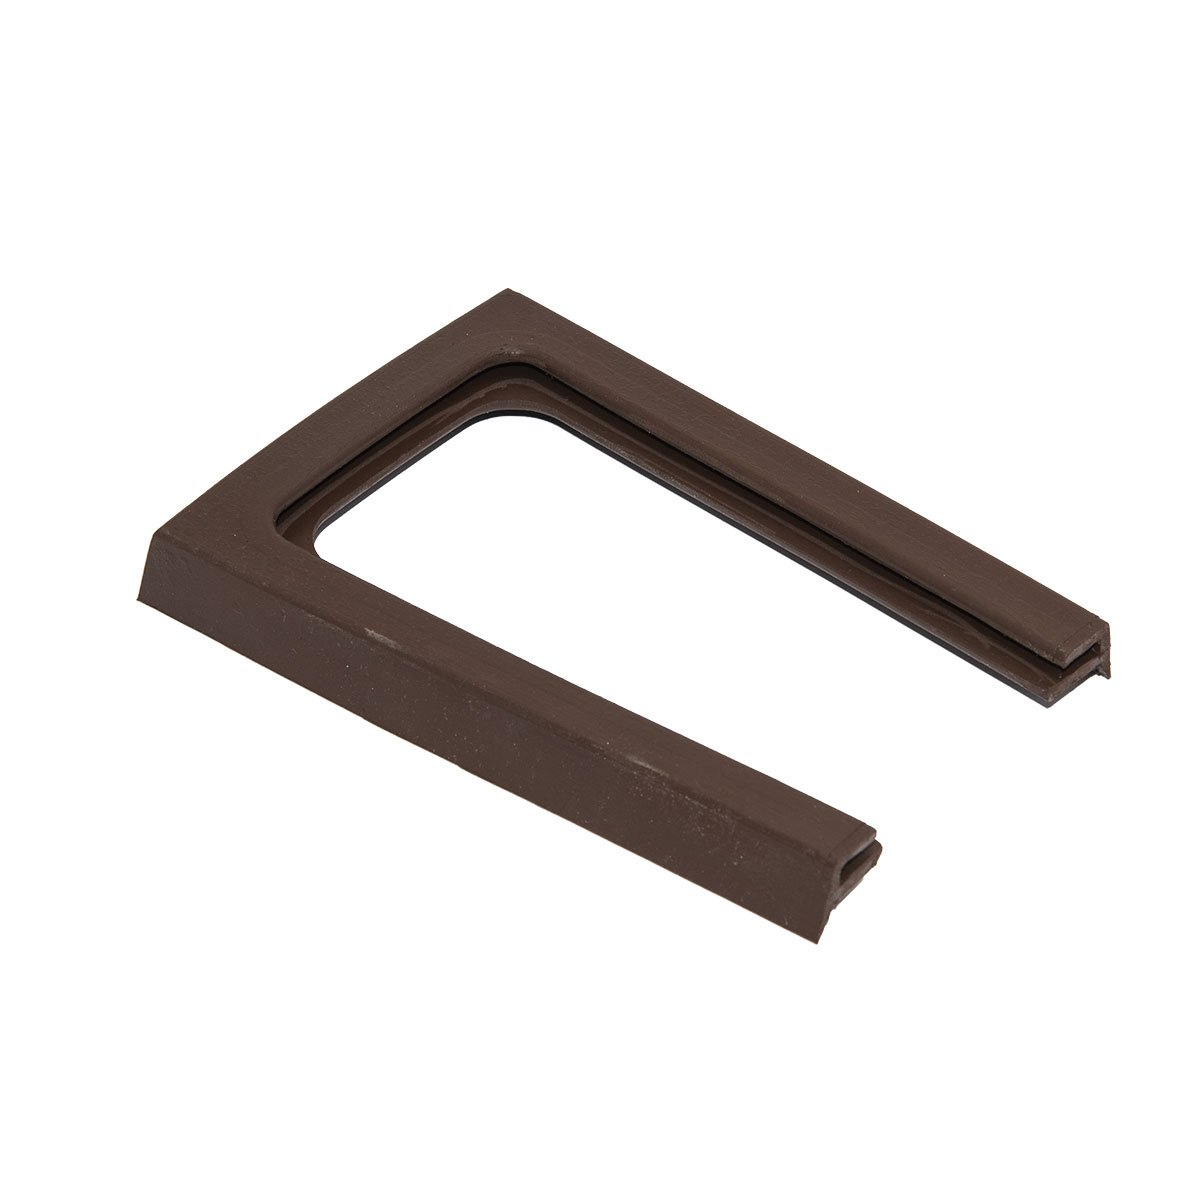 Wiper Gasket Seal for TapeTech 2-Inch EasyClean Nail Spotter